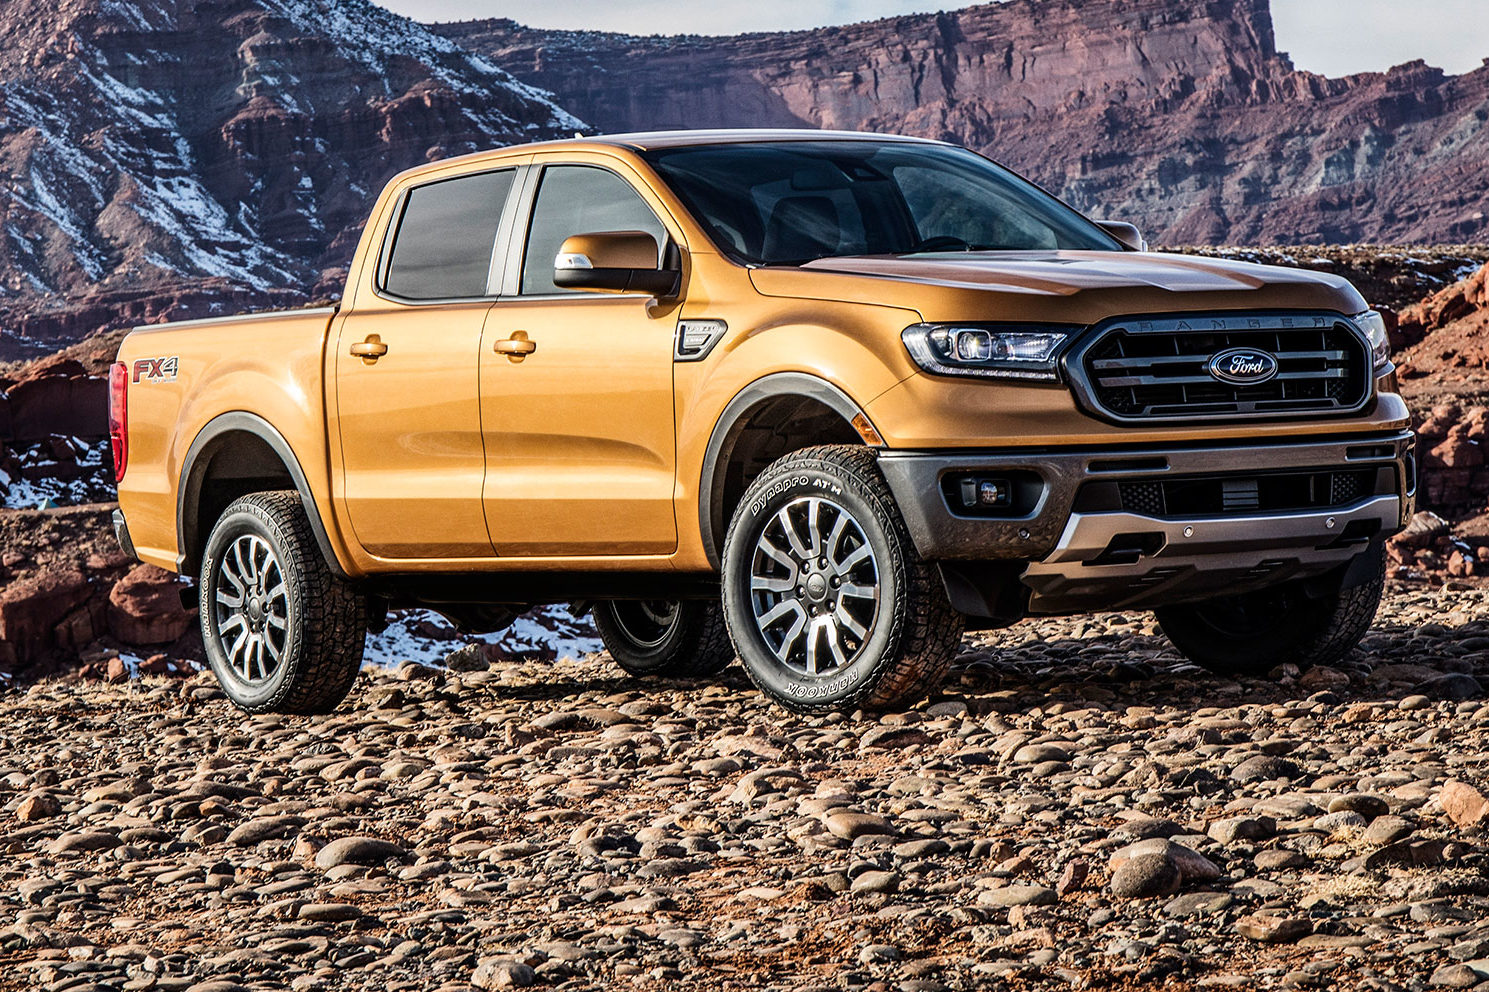 2019 Ford Ranger Off Road E1515784851949